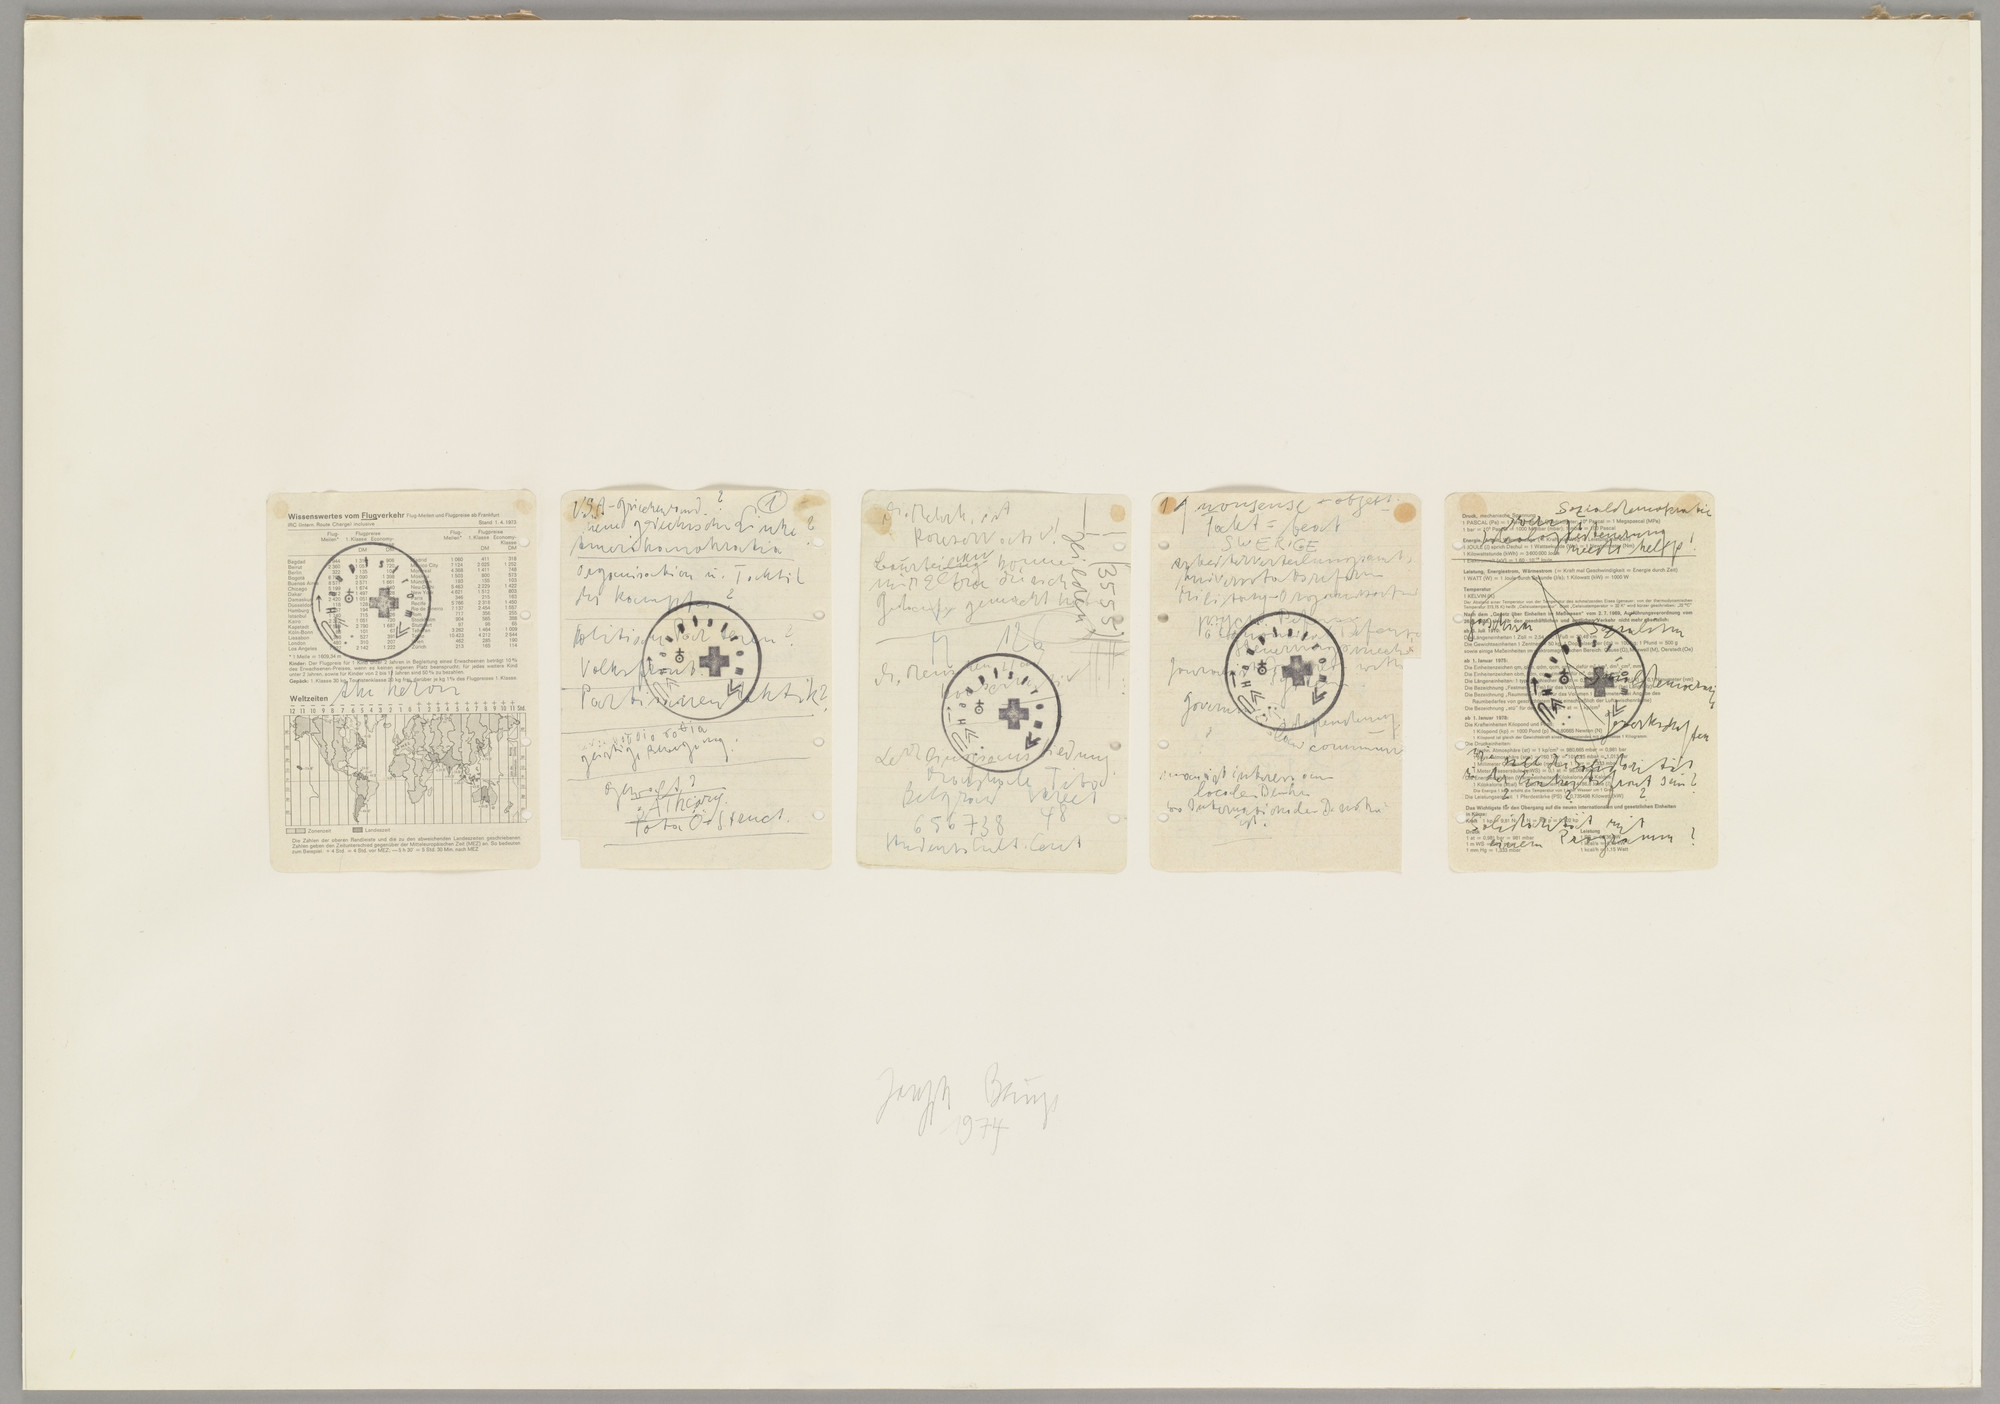 Joseph Beuys. Untitled. 1974